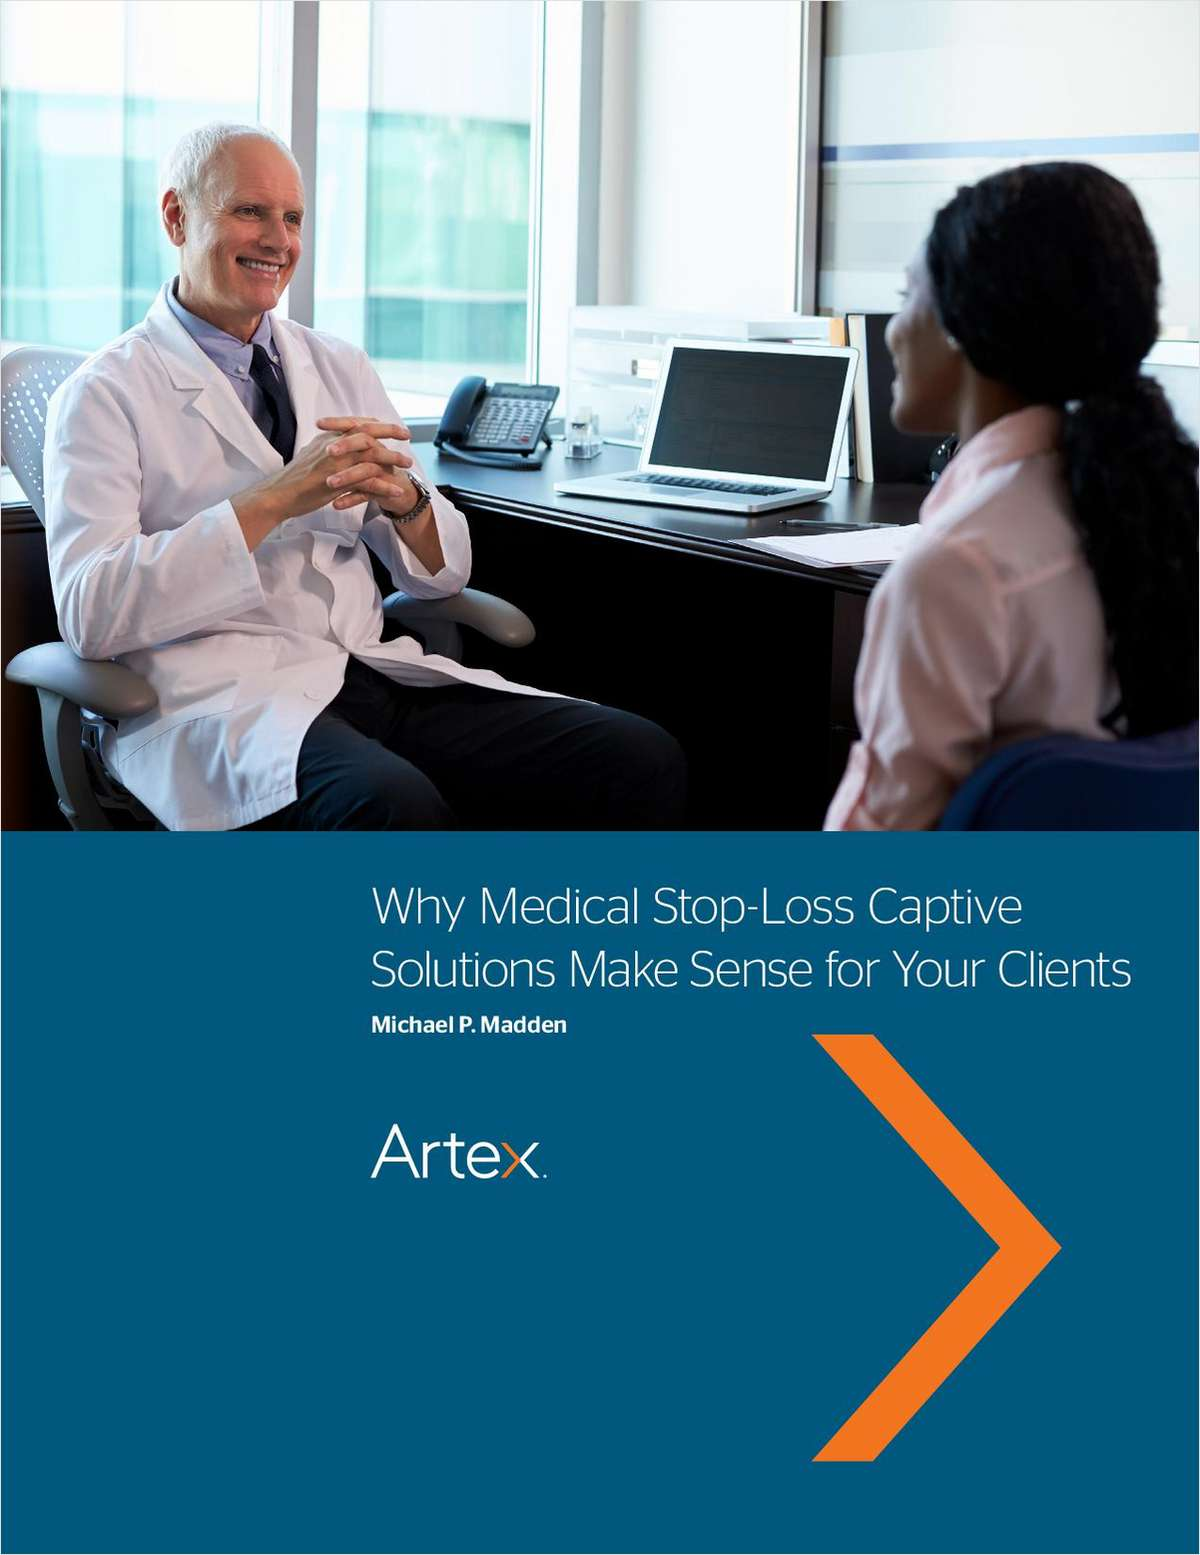 Why Medical Stop-Loss Captive Solutions Make Sense for Your Clients